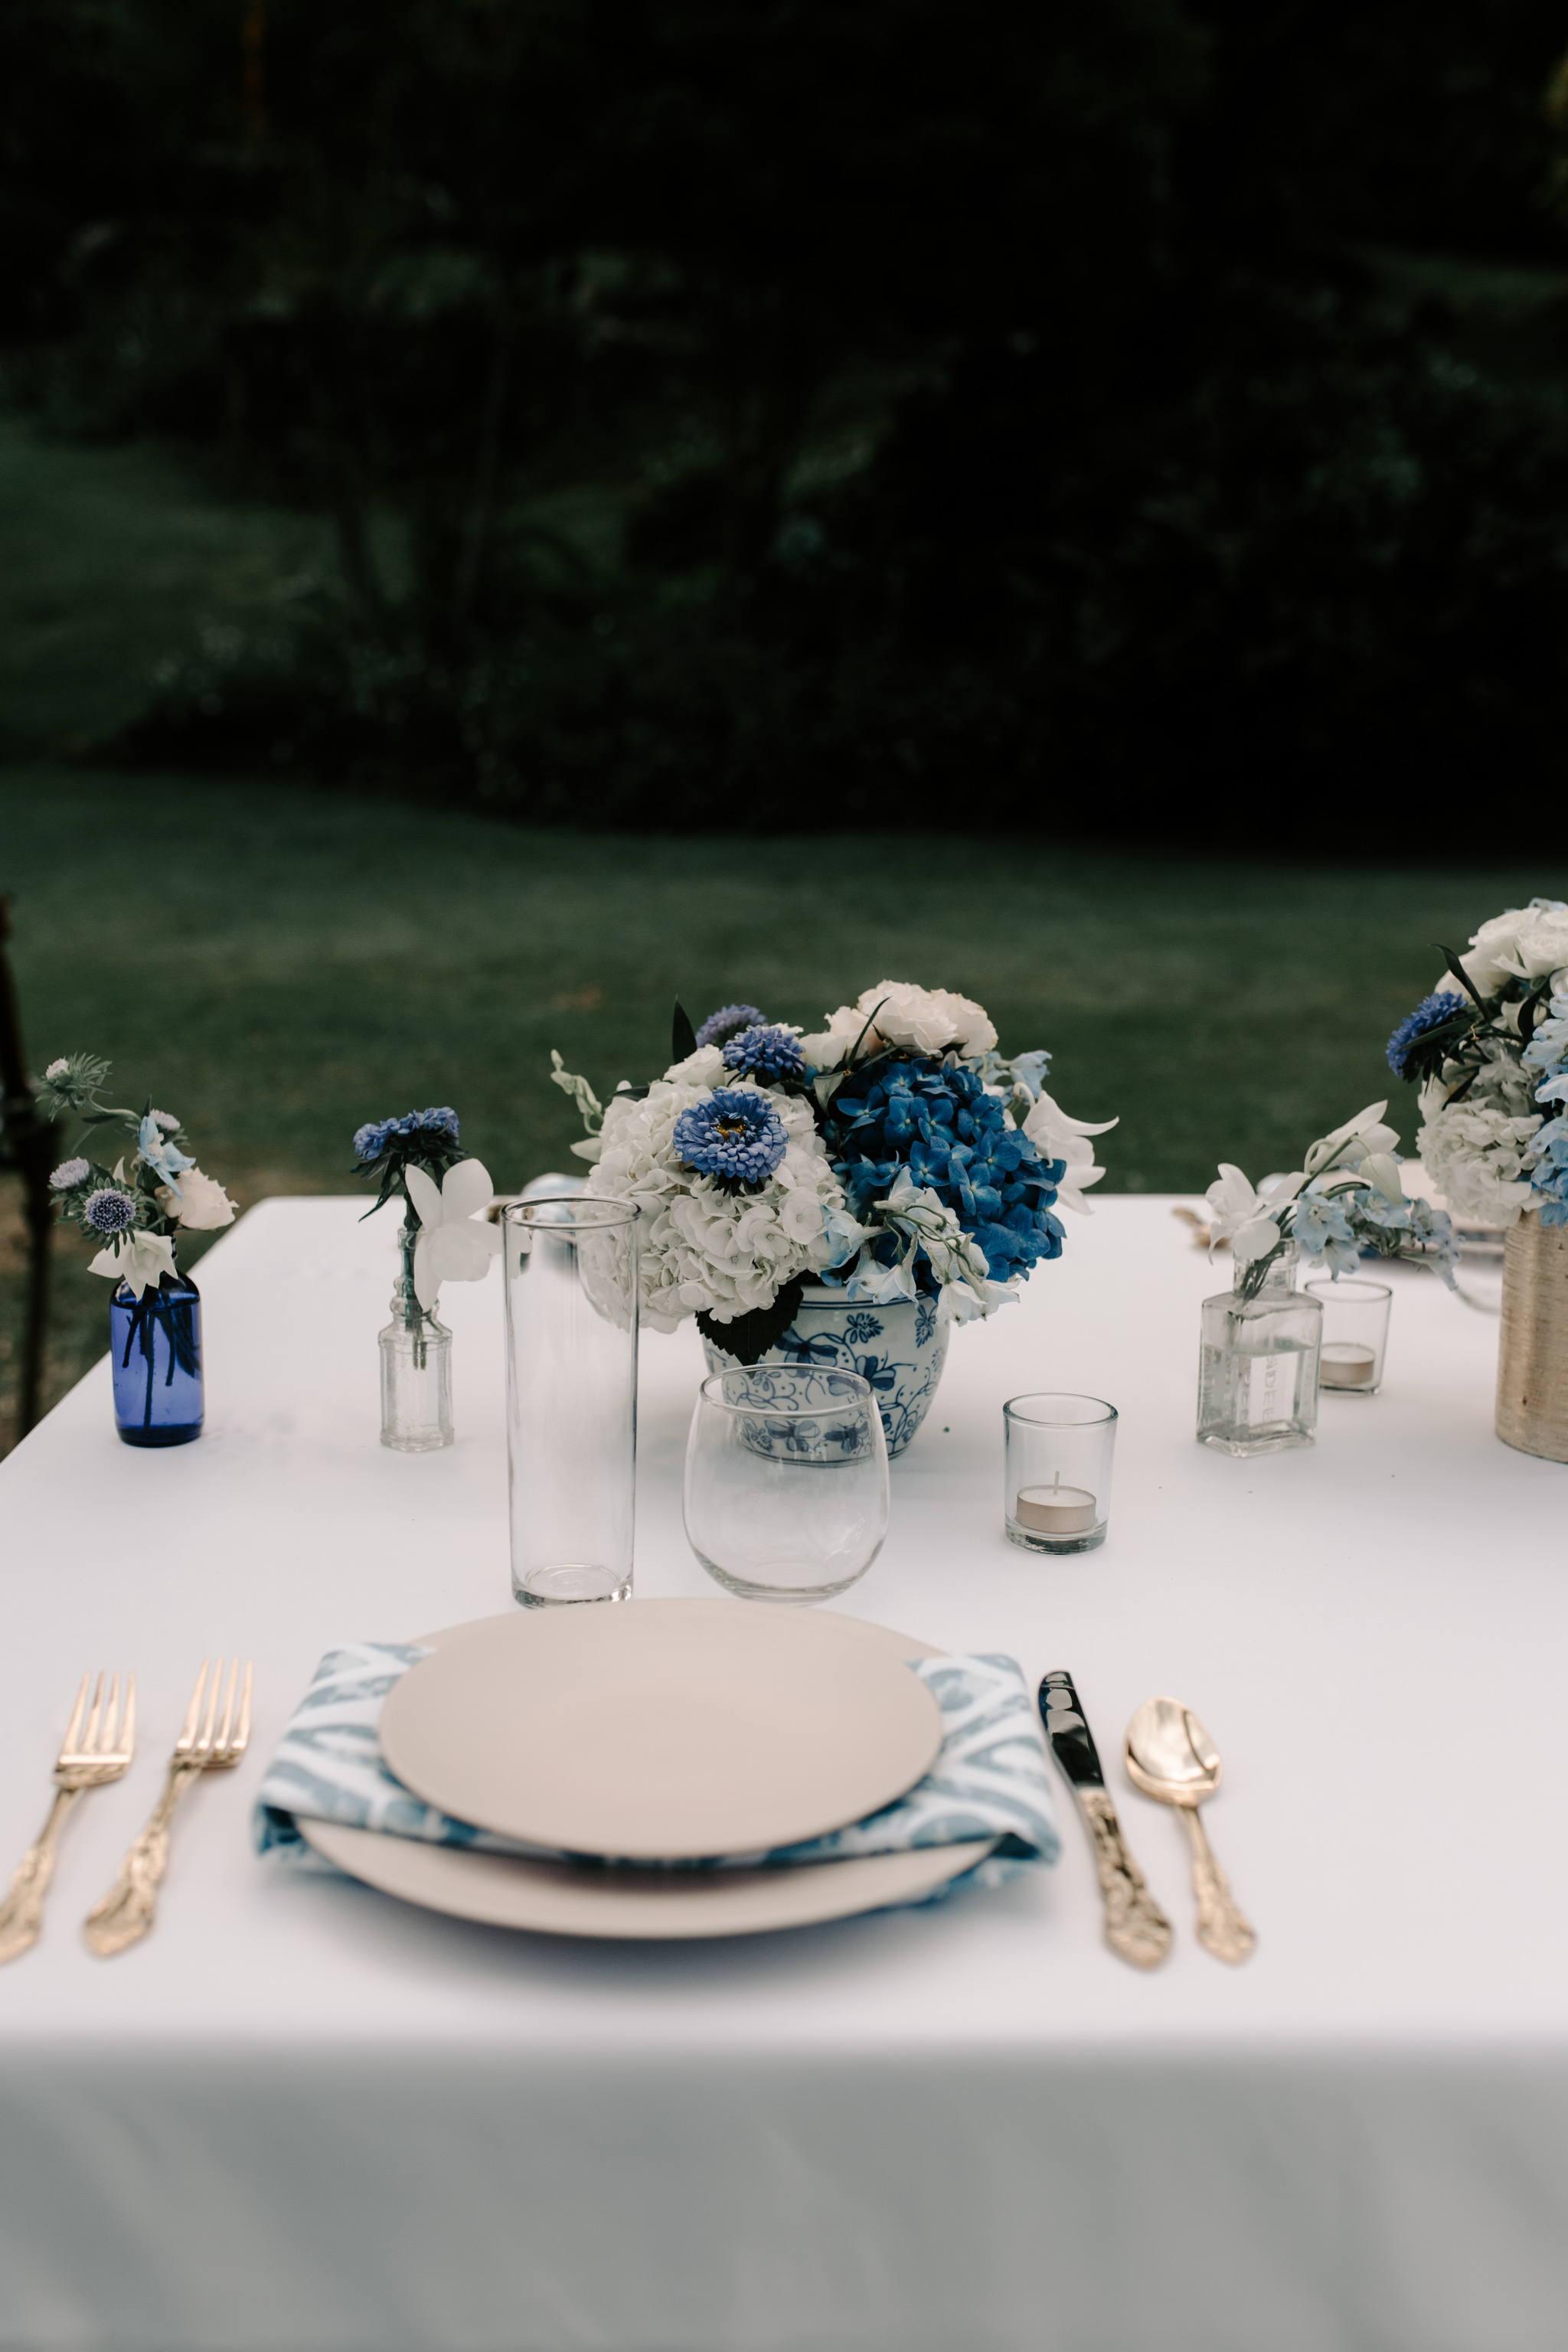 Beautiful tablescape and flowers for wedding reception at Kualoa Ranch Paliku Gardens. Photography by Hawaii fine art photographer Desiree Leilani